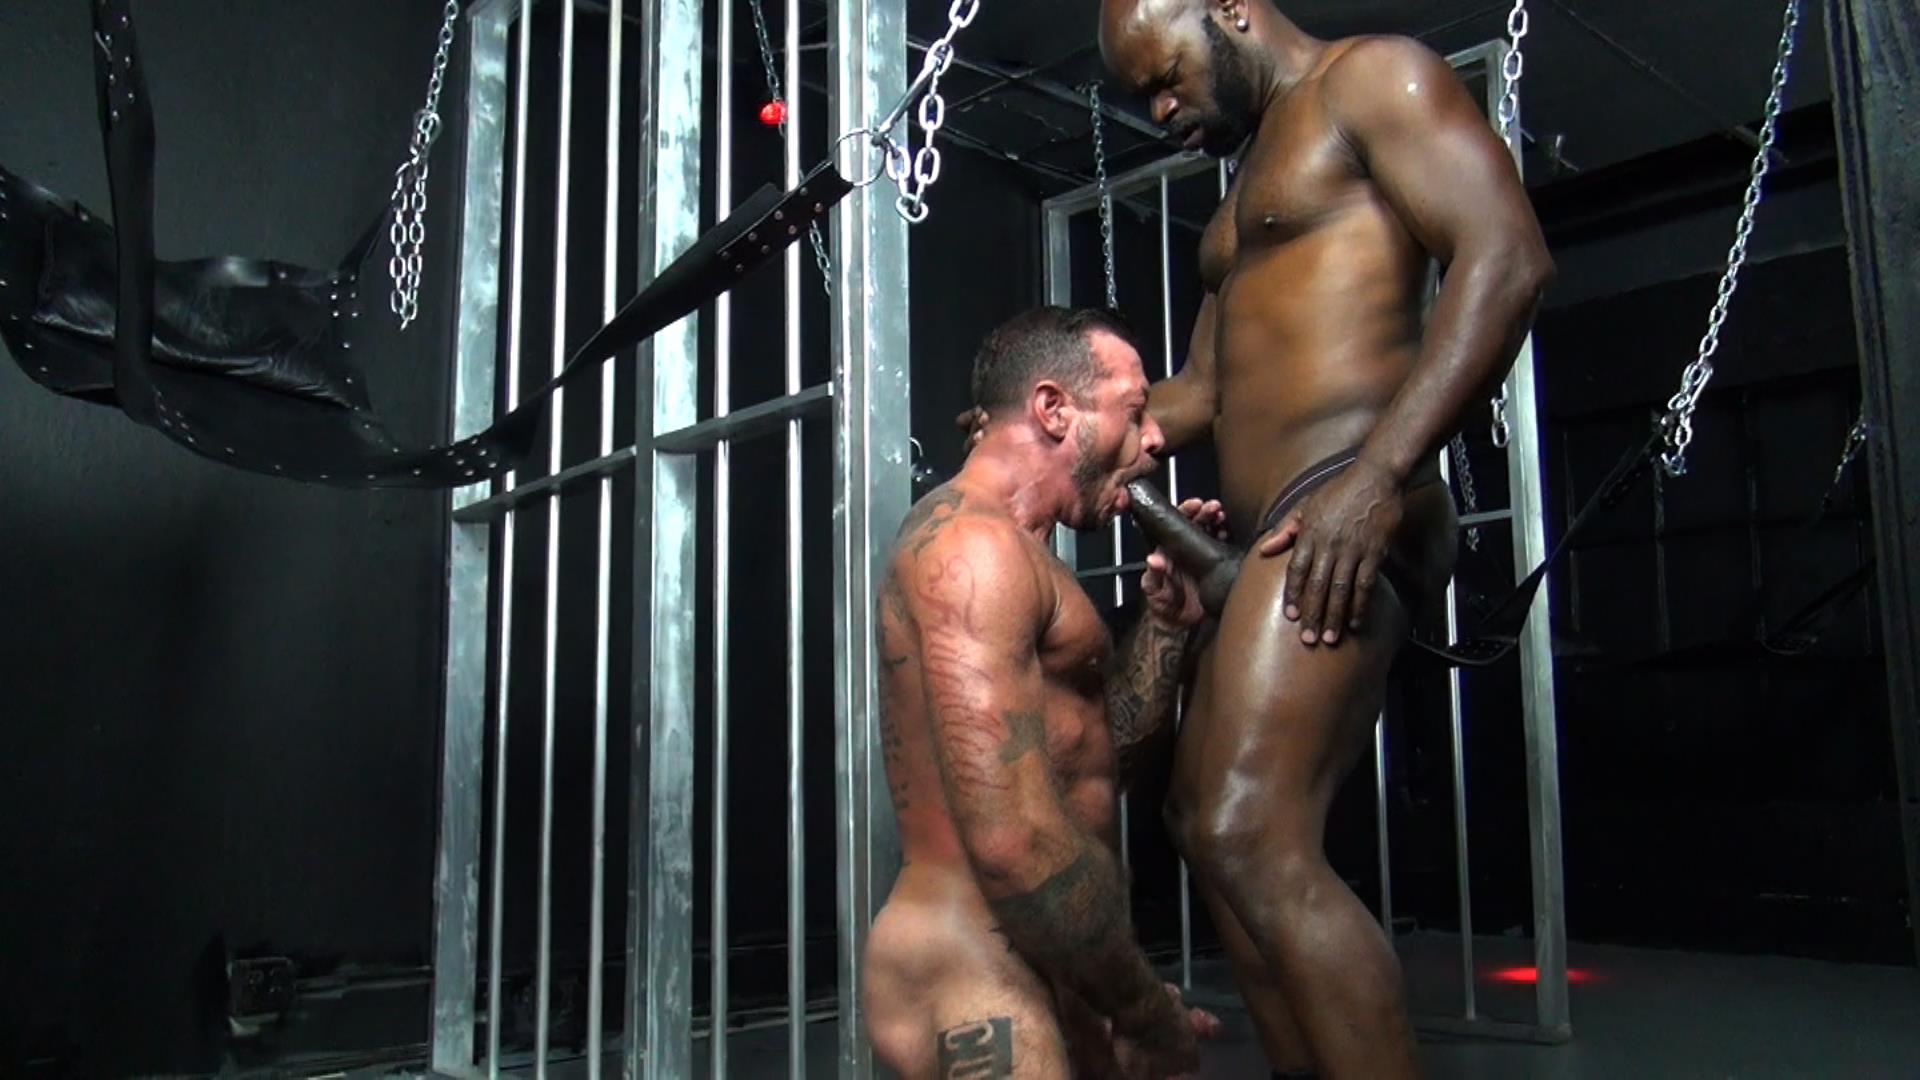 Gay black daddy fucks his slave